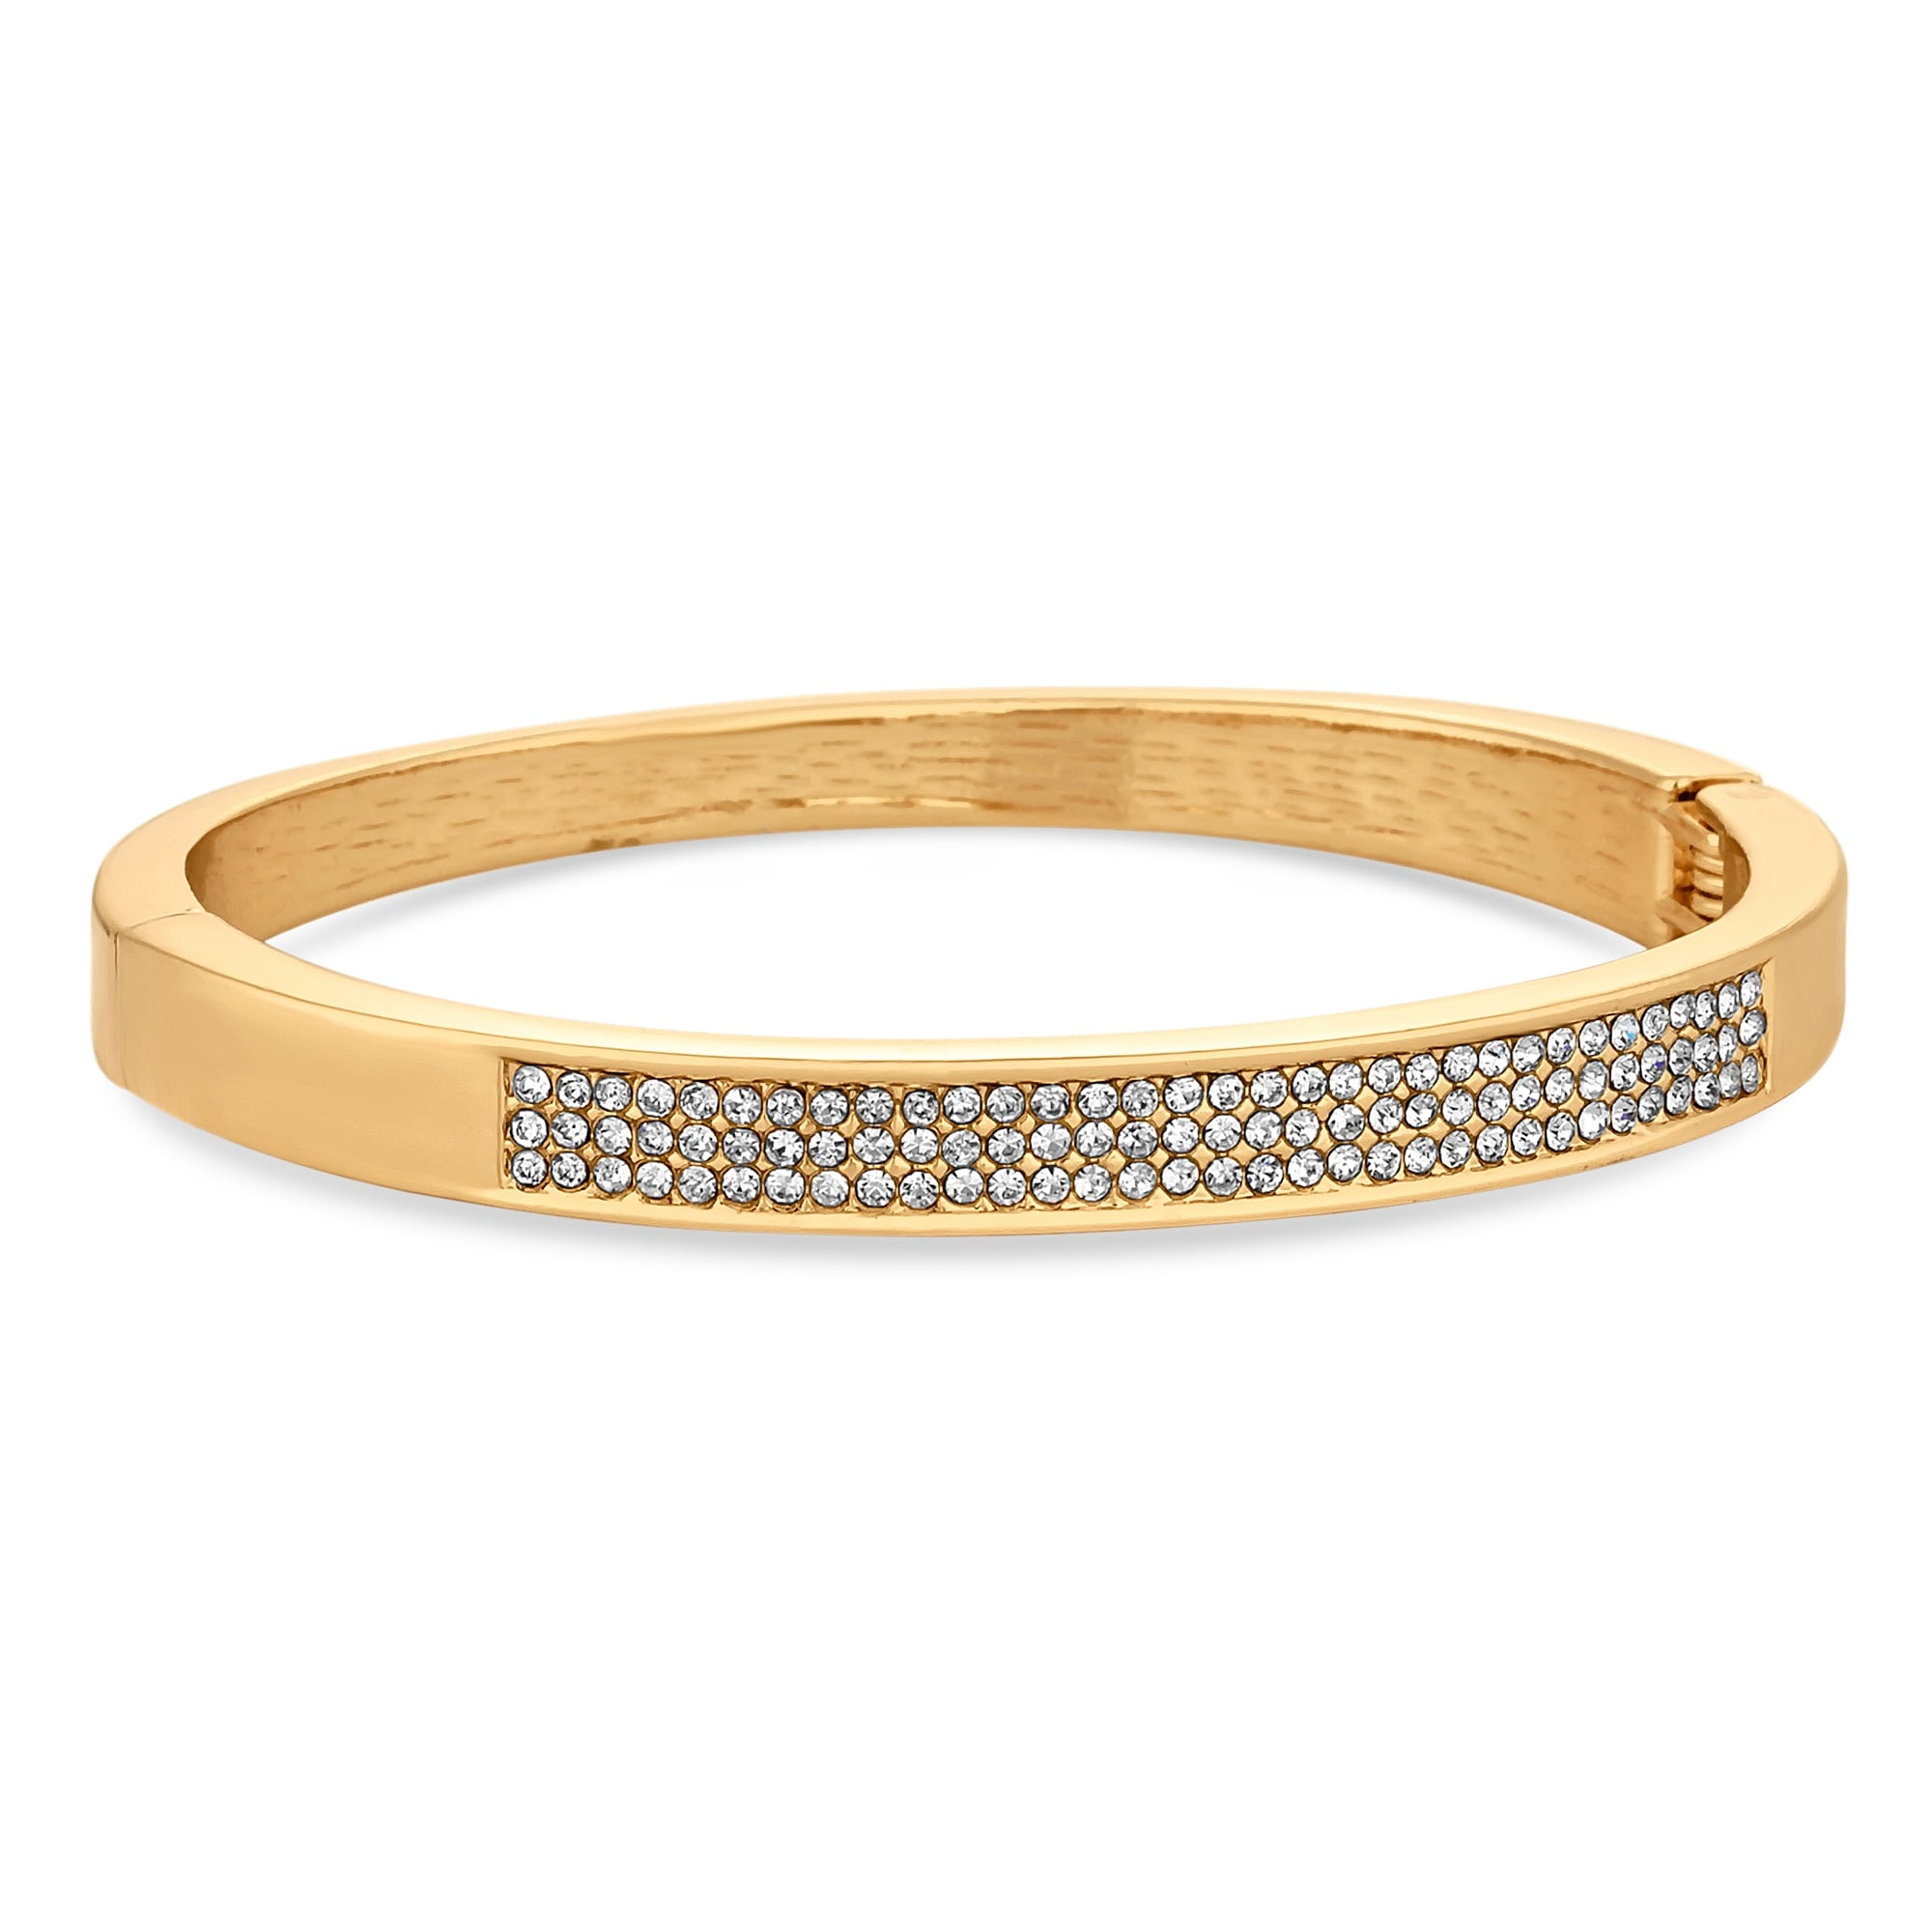 pave bangles jewelry gold white odelia diamond bangle bracelet